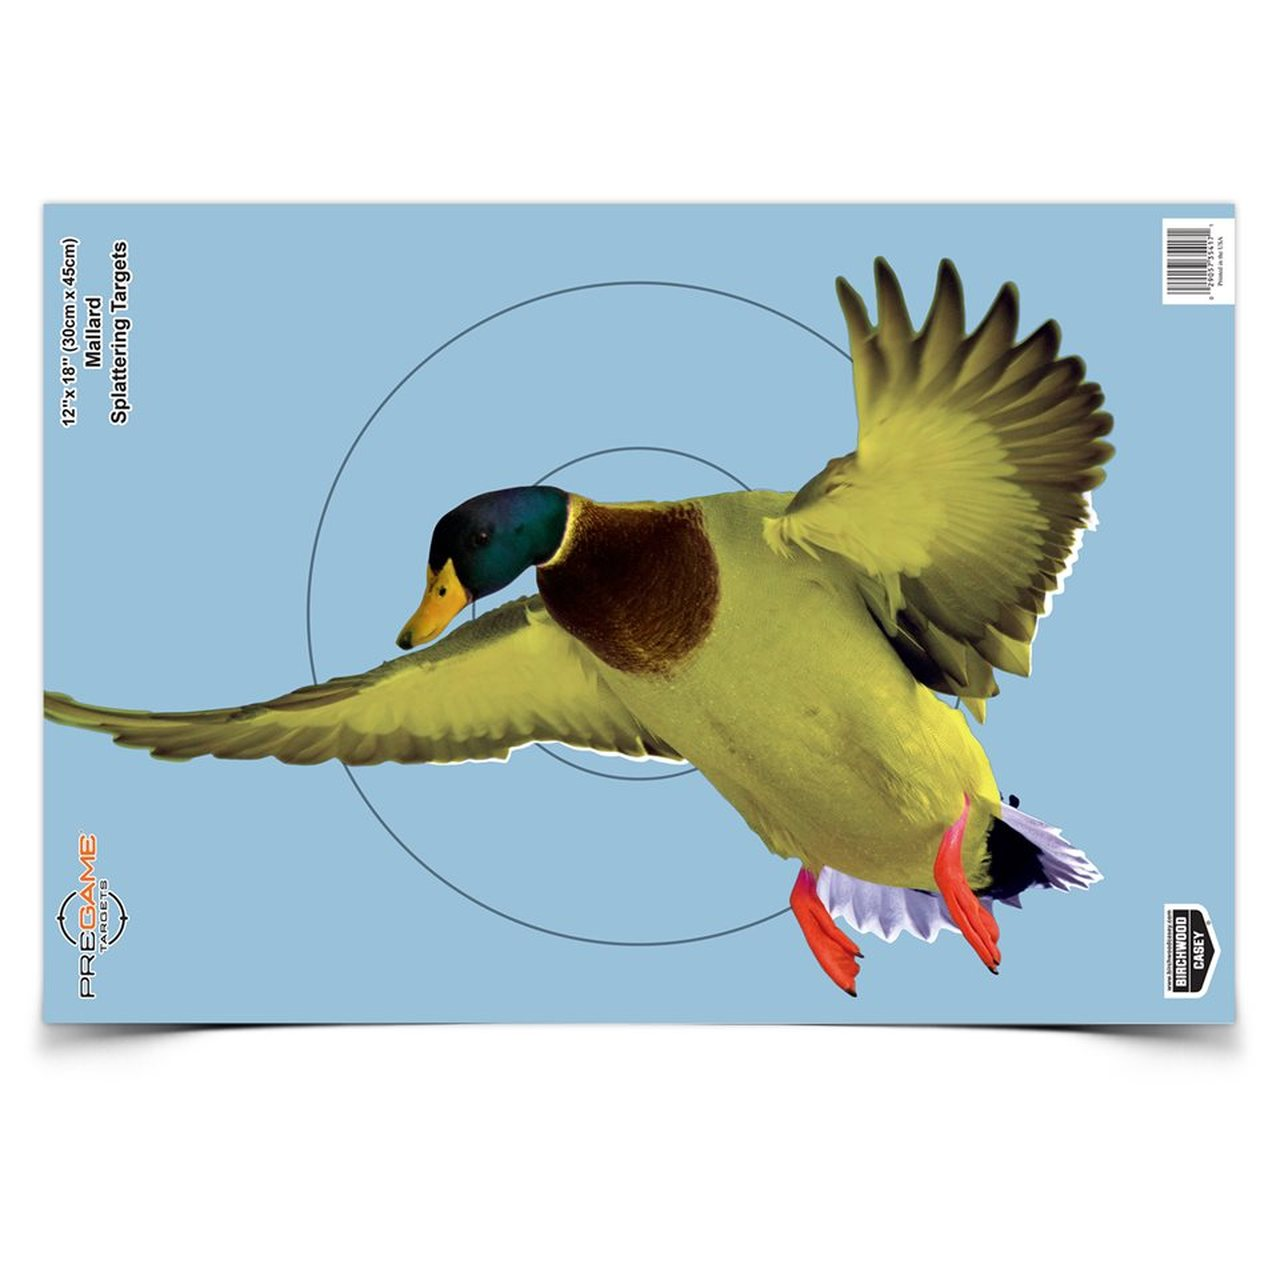 Birchwood Casey Pregame Duck Patterning Target - 8 Pack_1.jpg